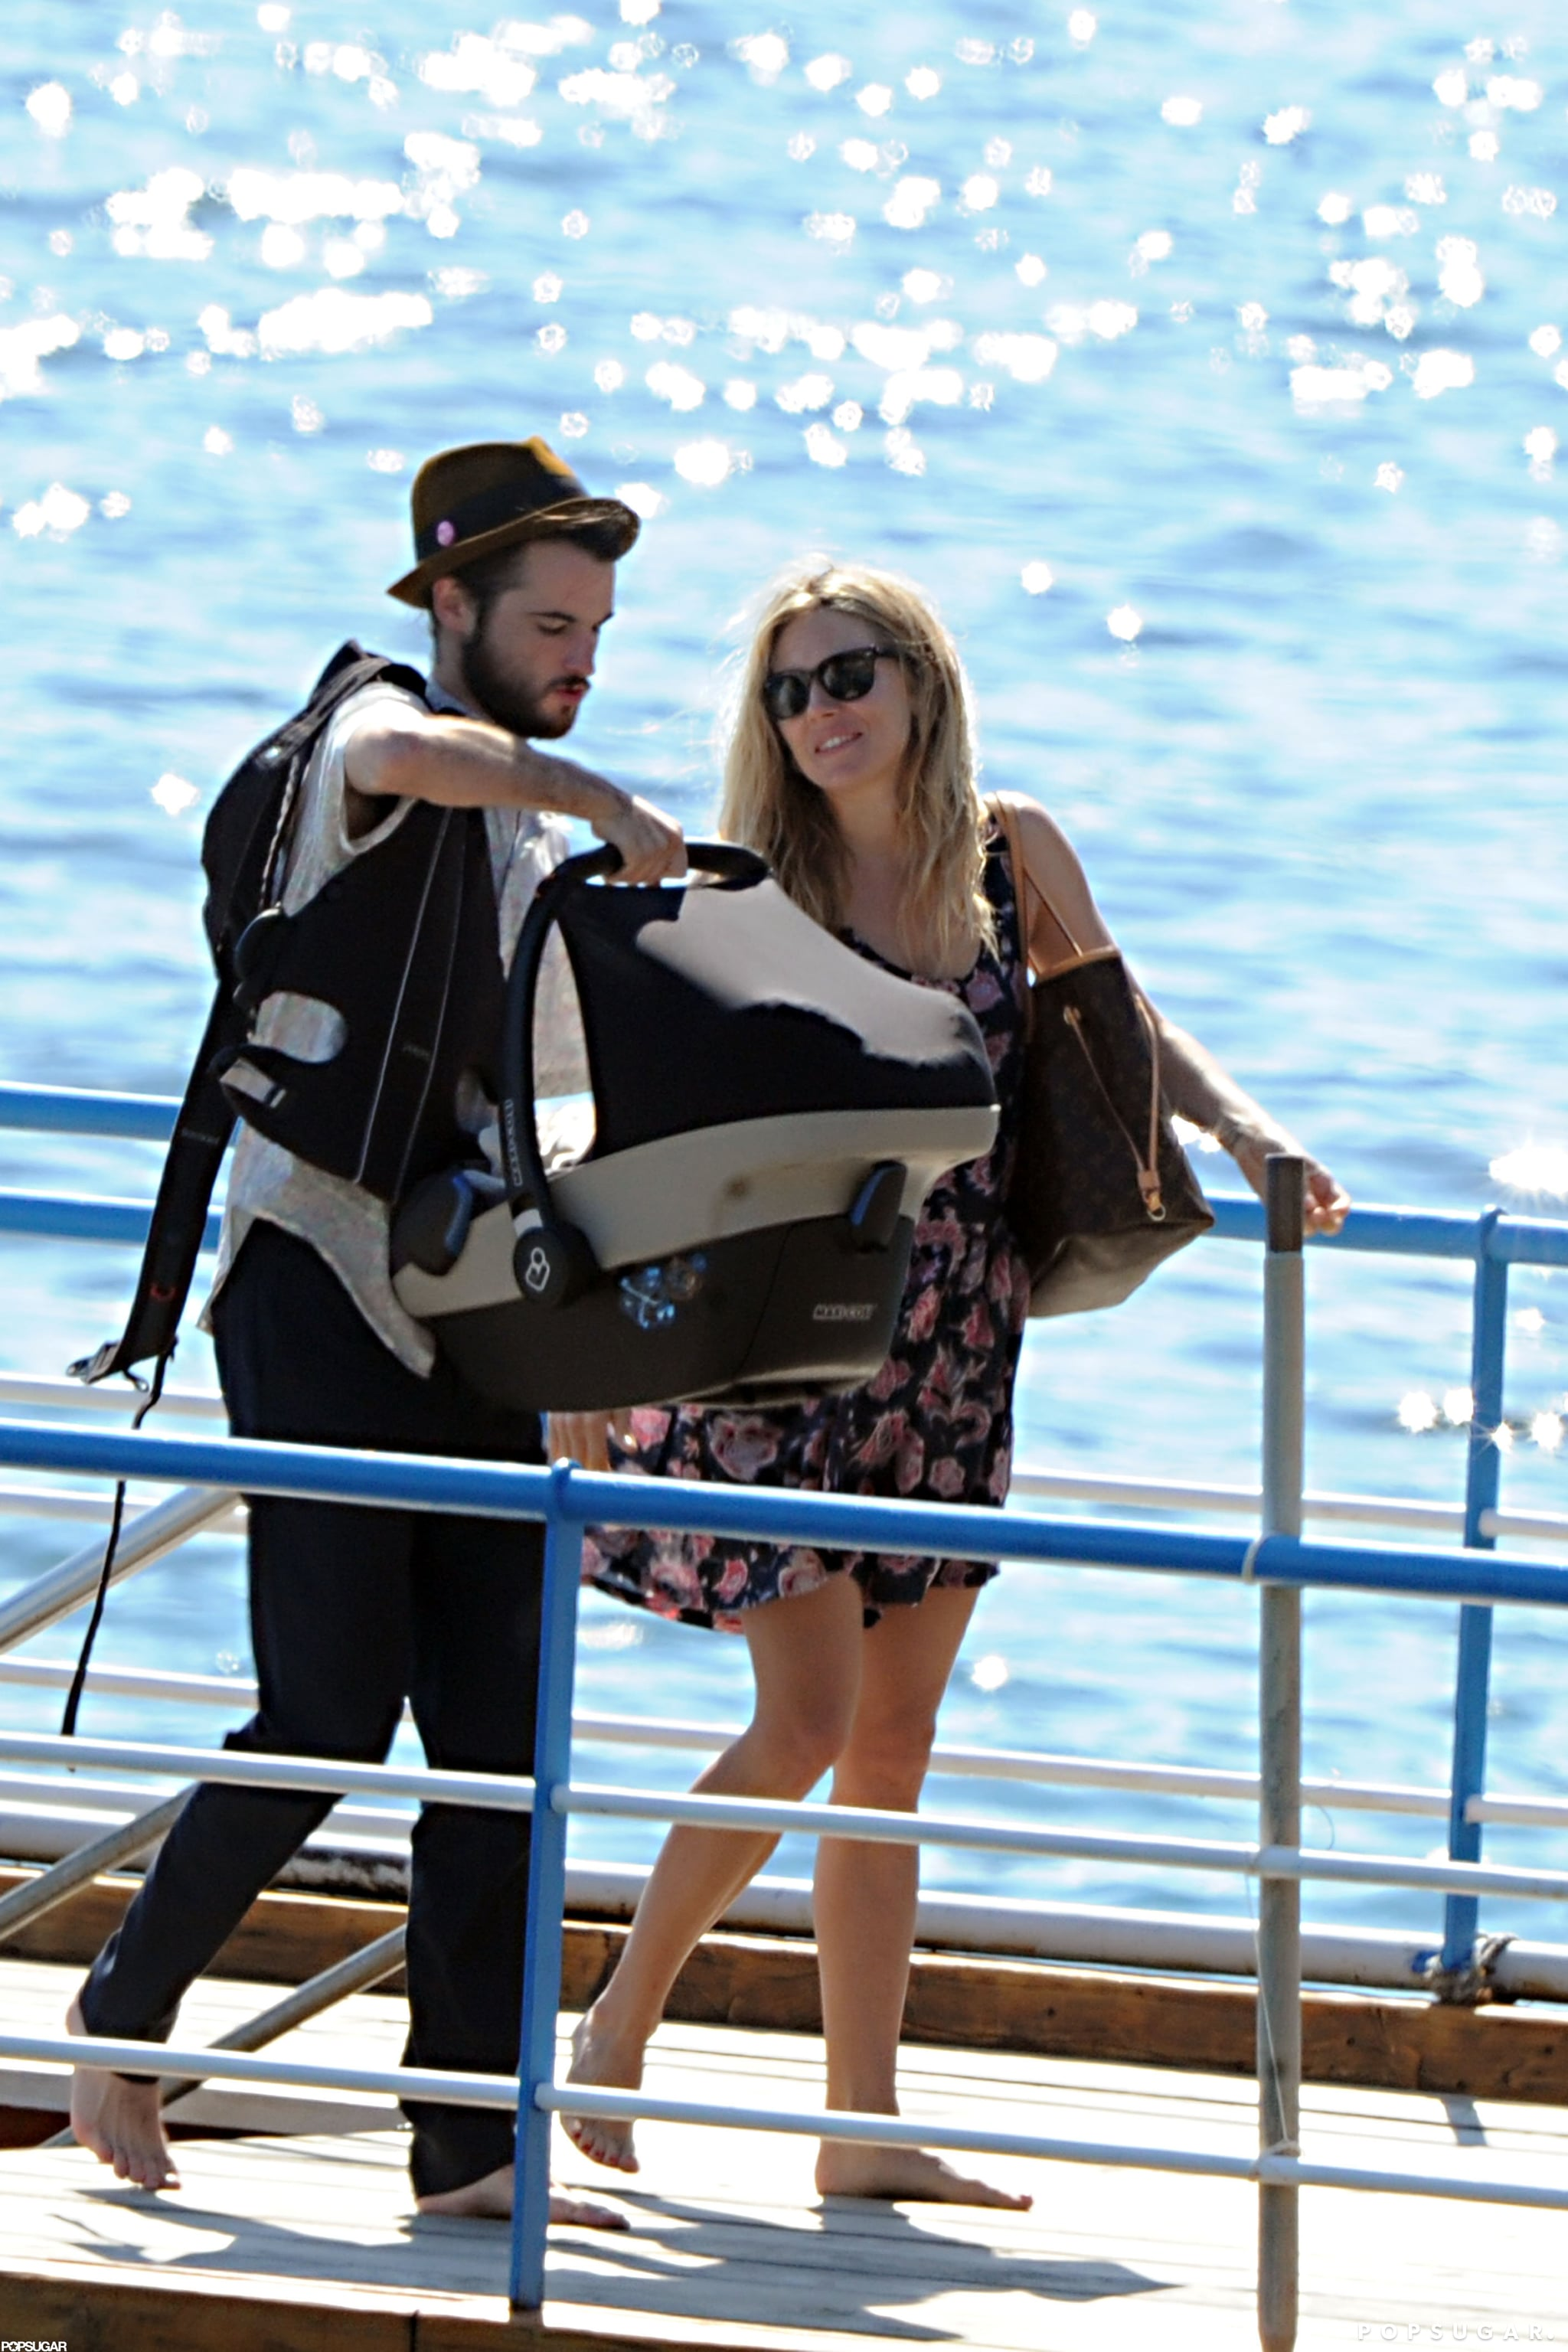 Tom Sturridge carried Marlowe in a carrier off of a boat in Positano with Sienna Miller.